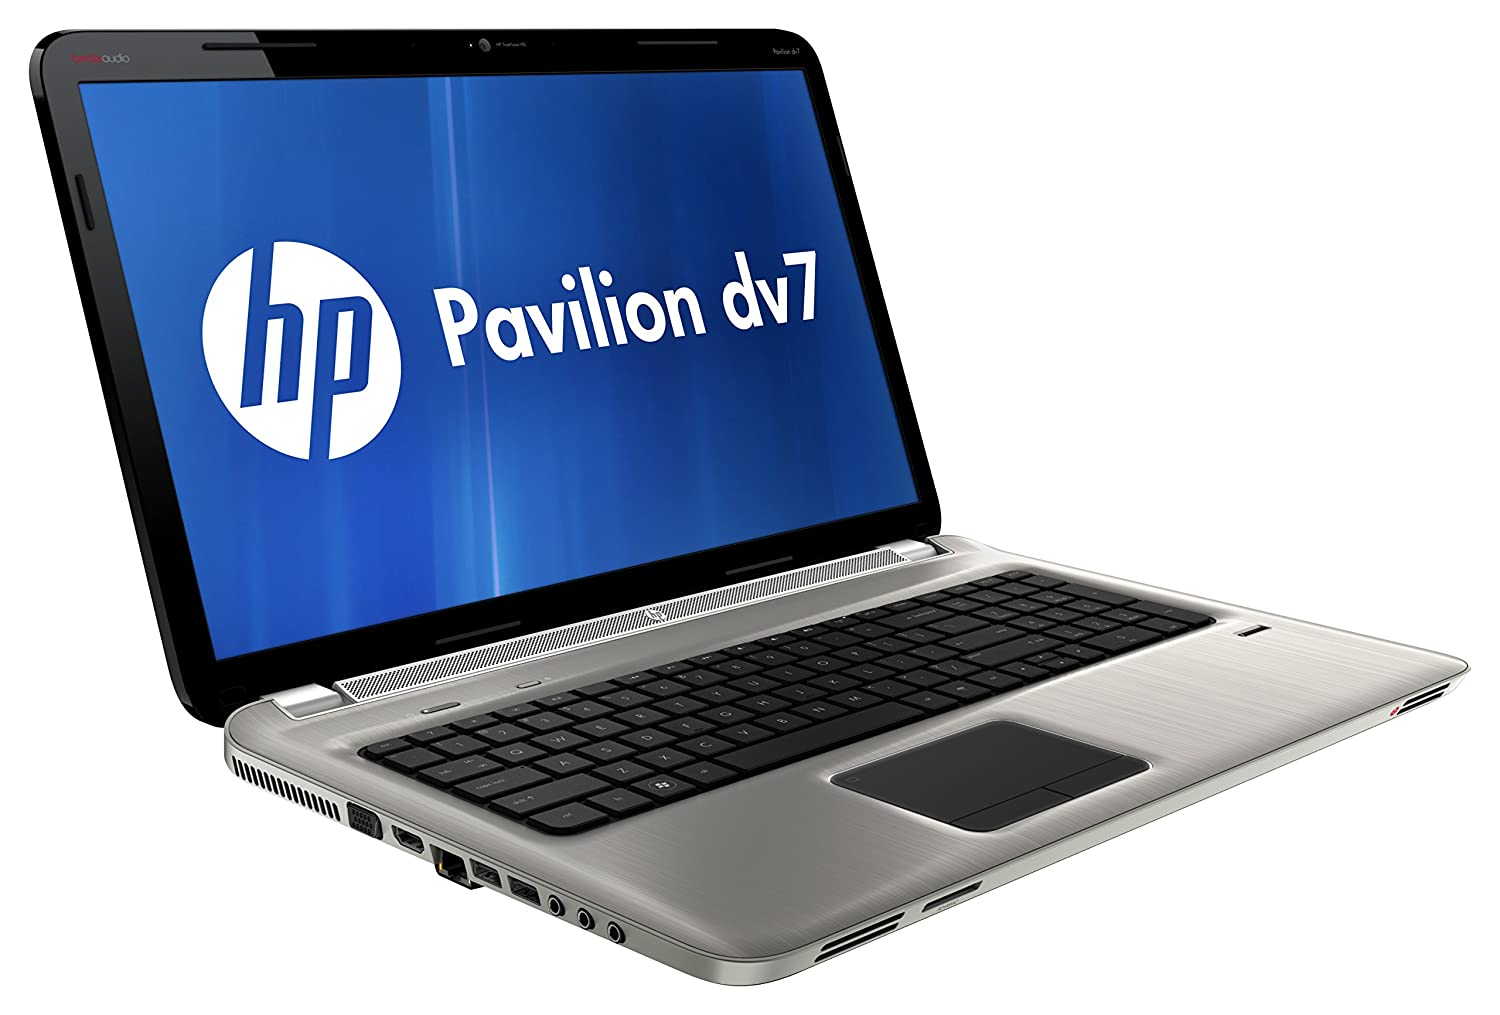 Amazon.com: HP Pavilion dv7-6c95dx Intel Core i7: Computers & Accessories